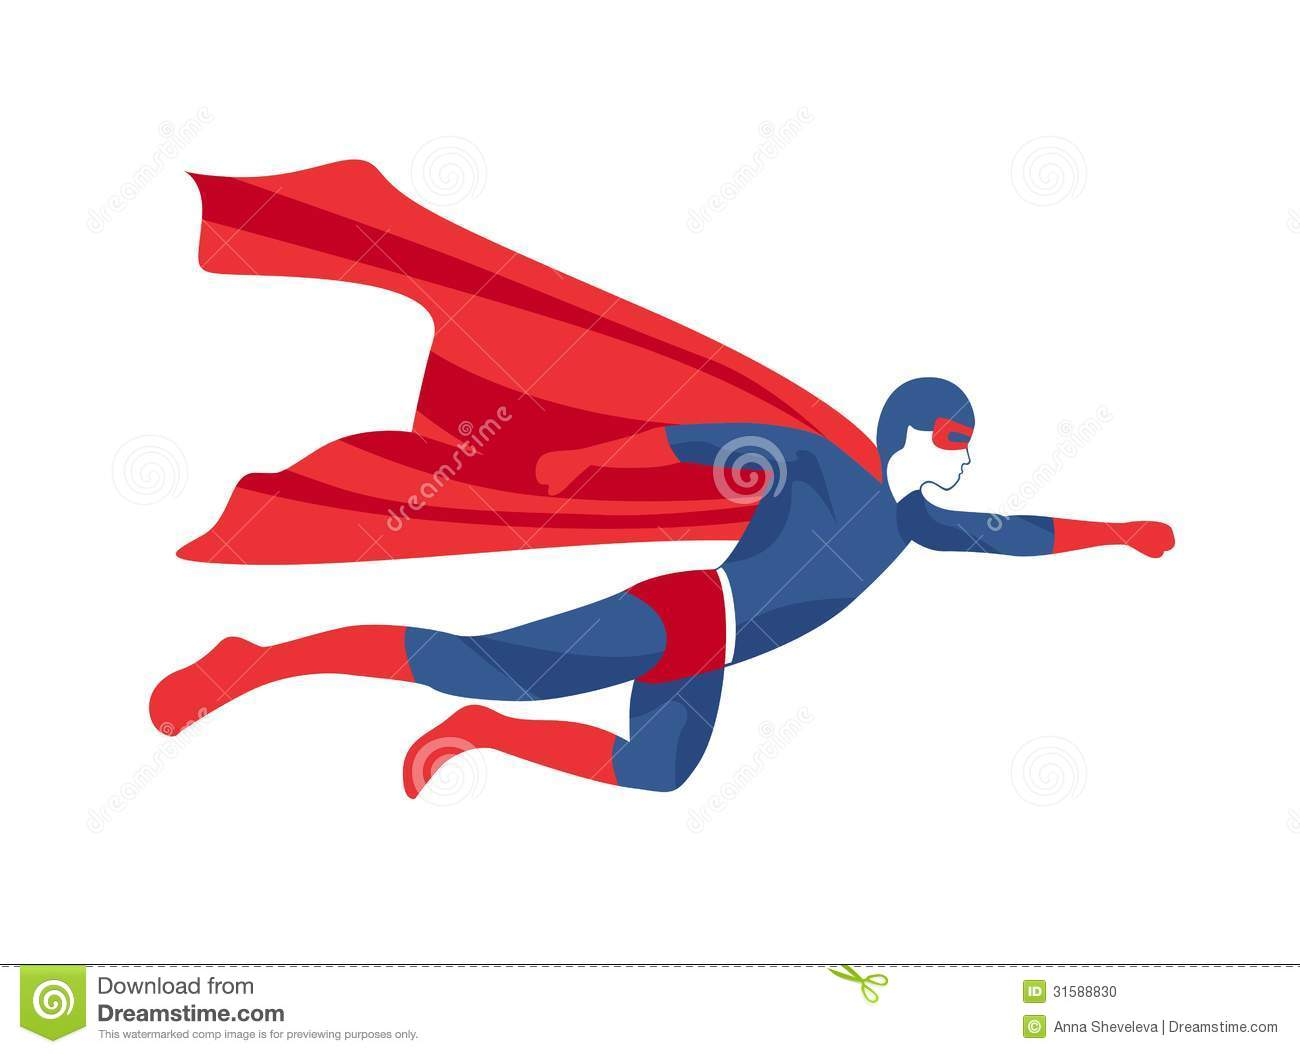 Stock Photo Superhero Icon Vector Flying Superman Figure Symbol Image31588830 on design floor plan symbol for audio